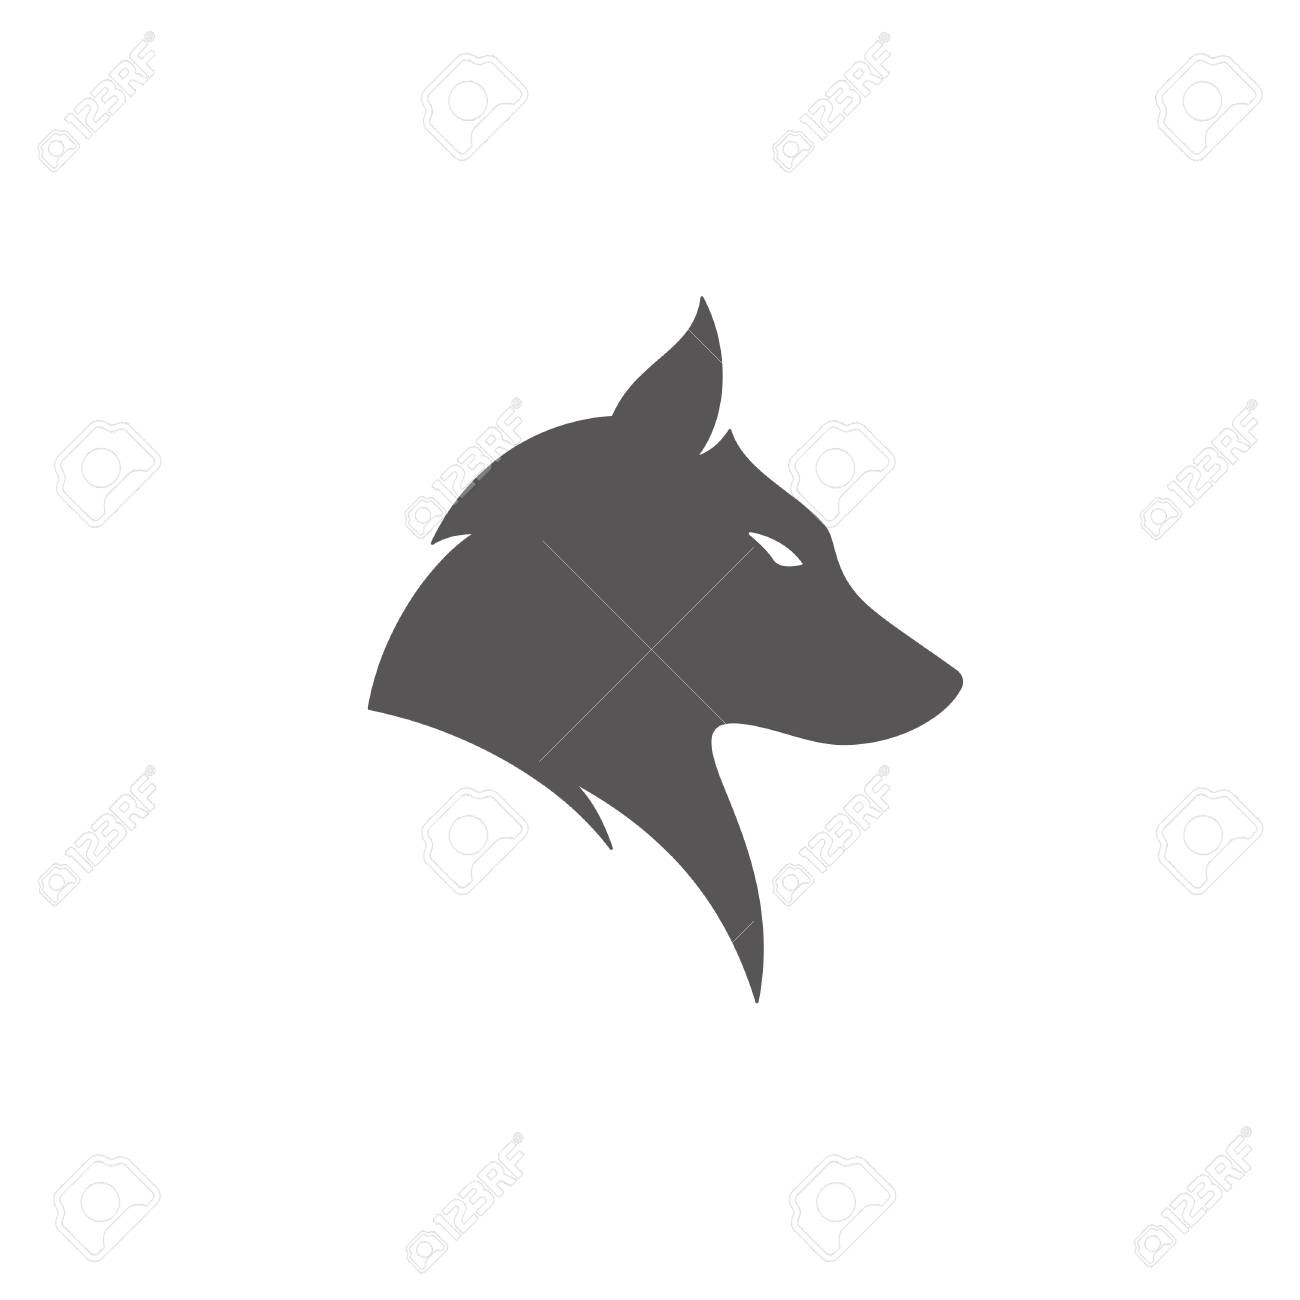 Wolf Silhouette Isolated On White Background Vector Illustration